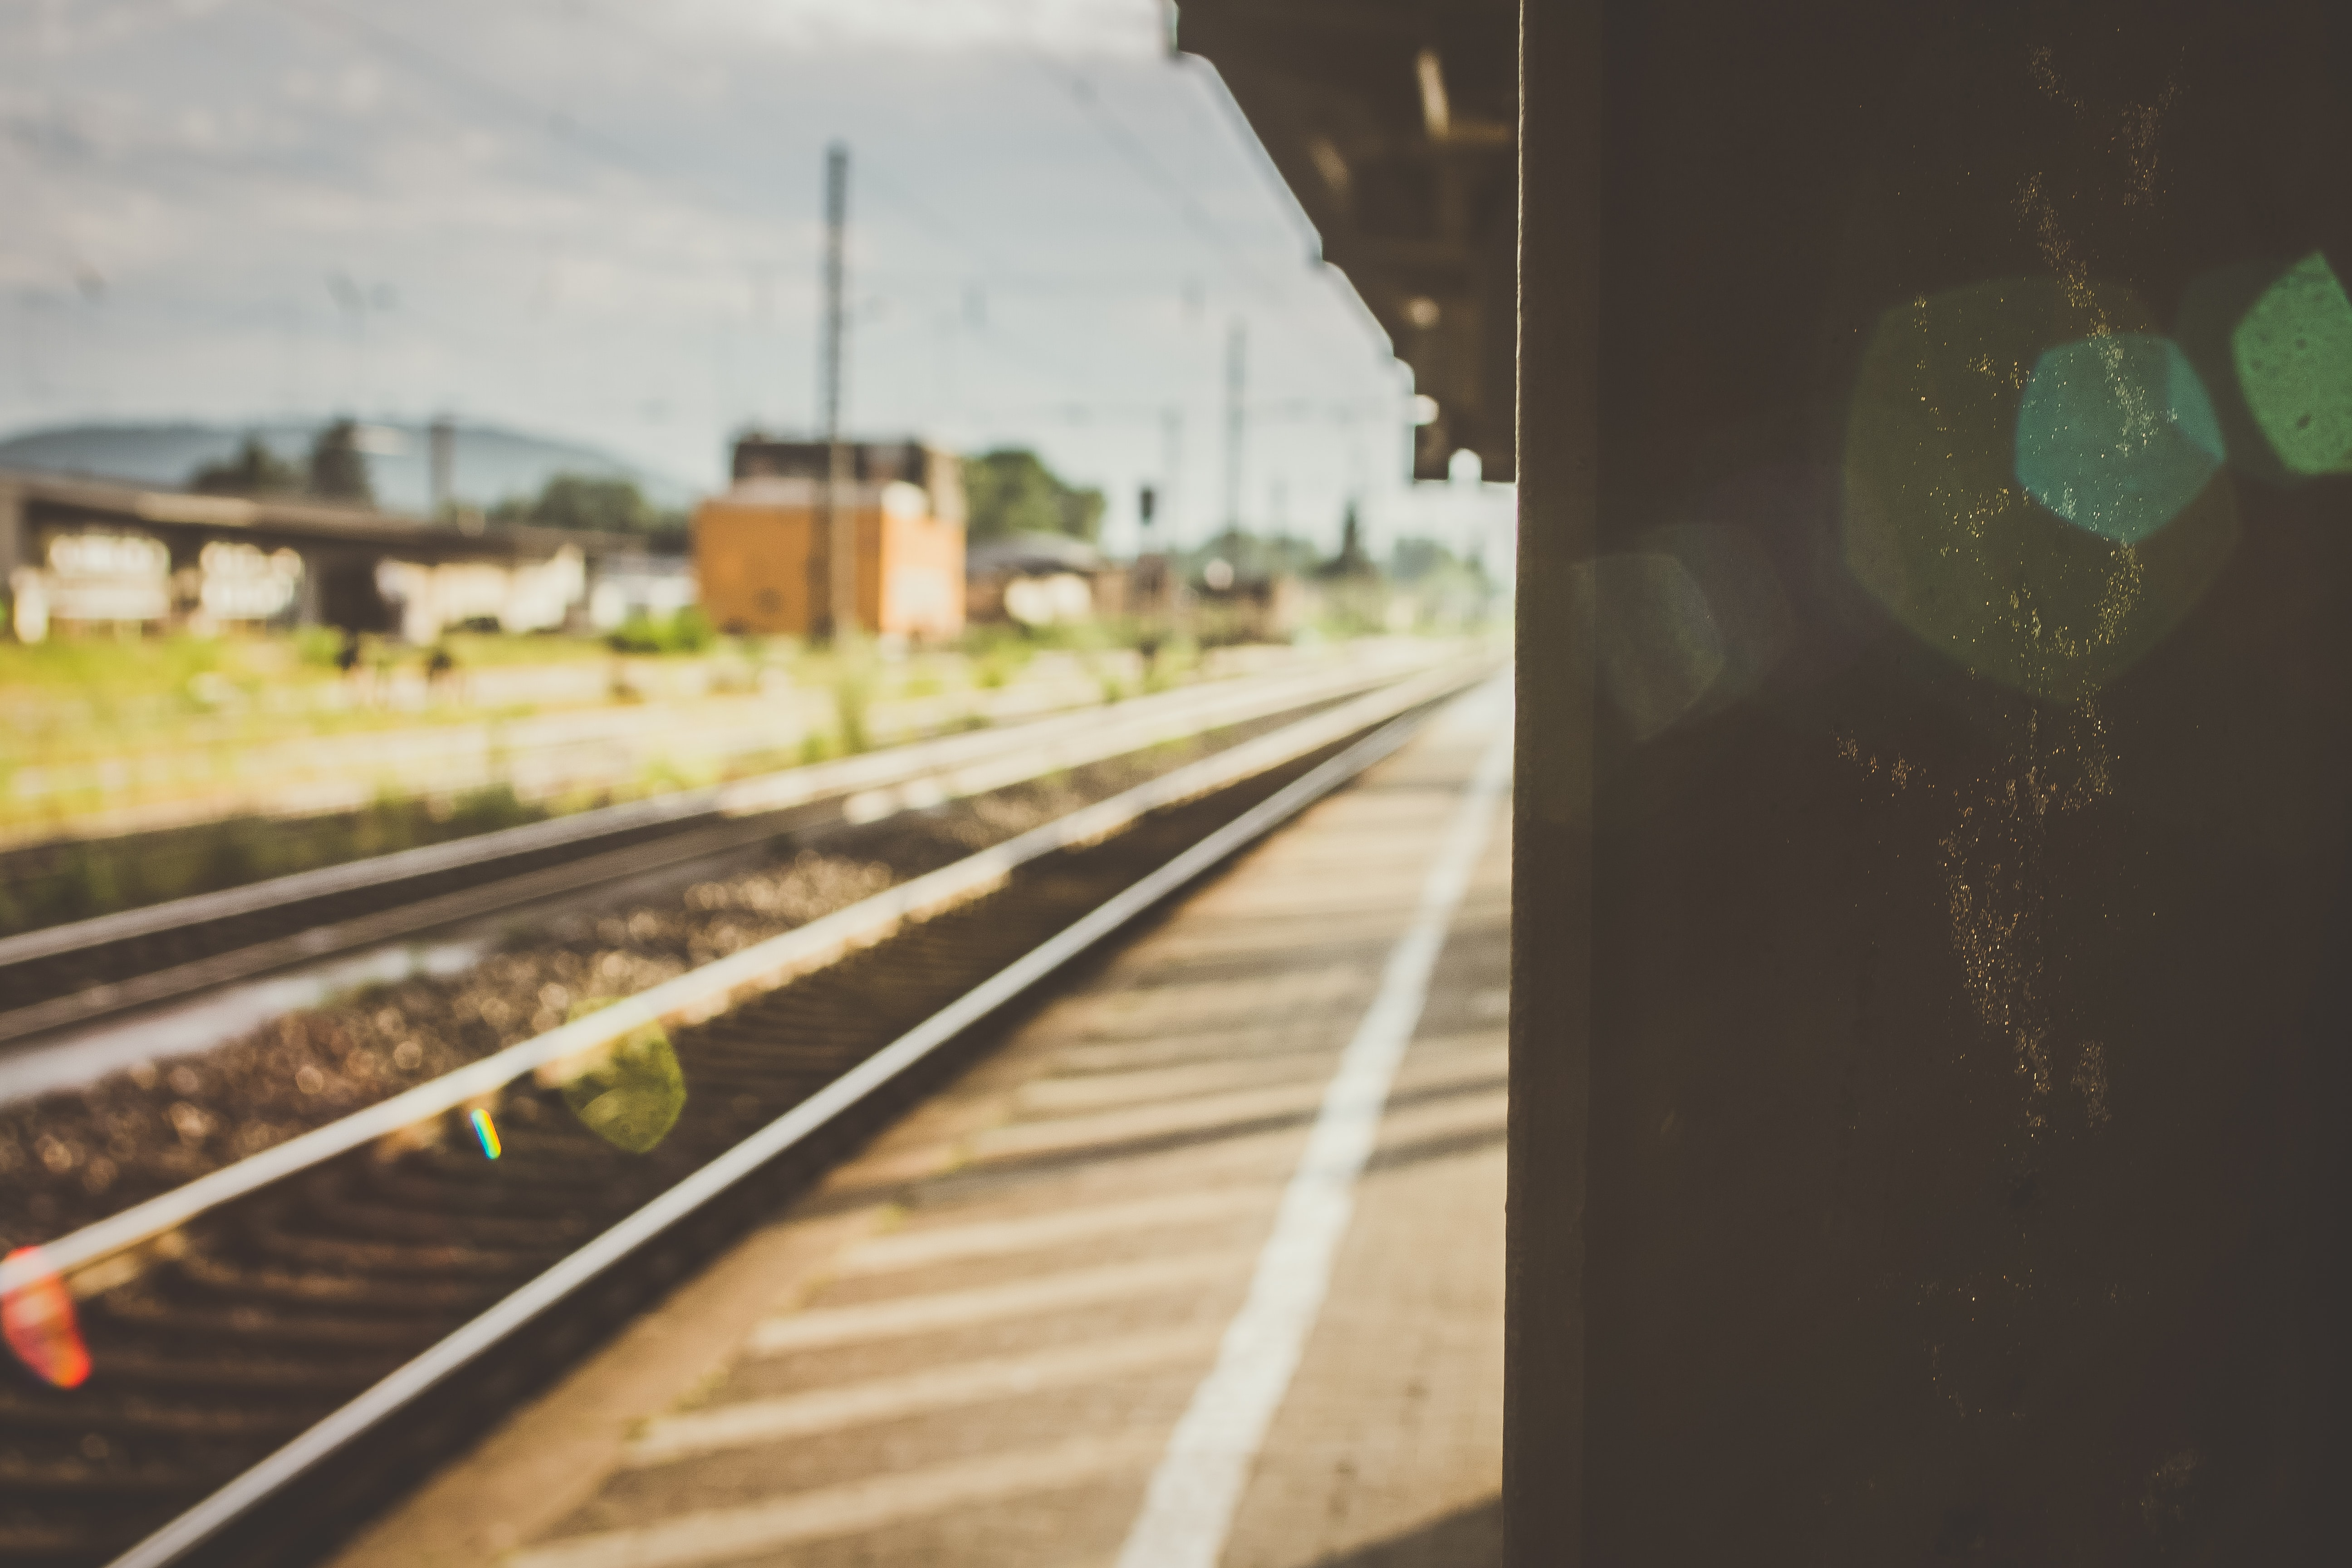 A blurry shot of the train tracks in Gelnhausen with lens flare effect.